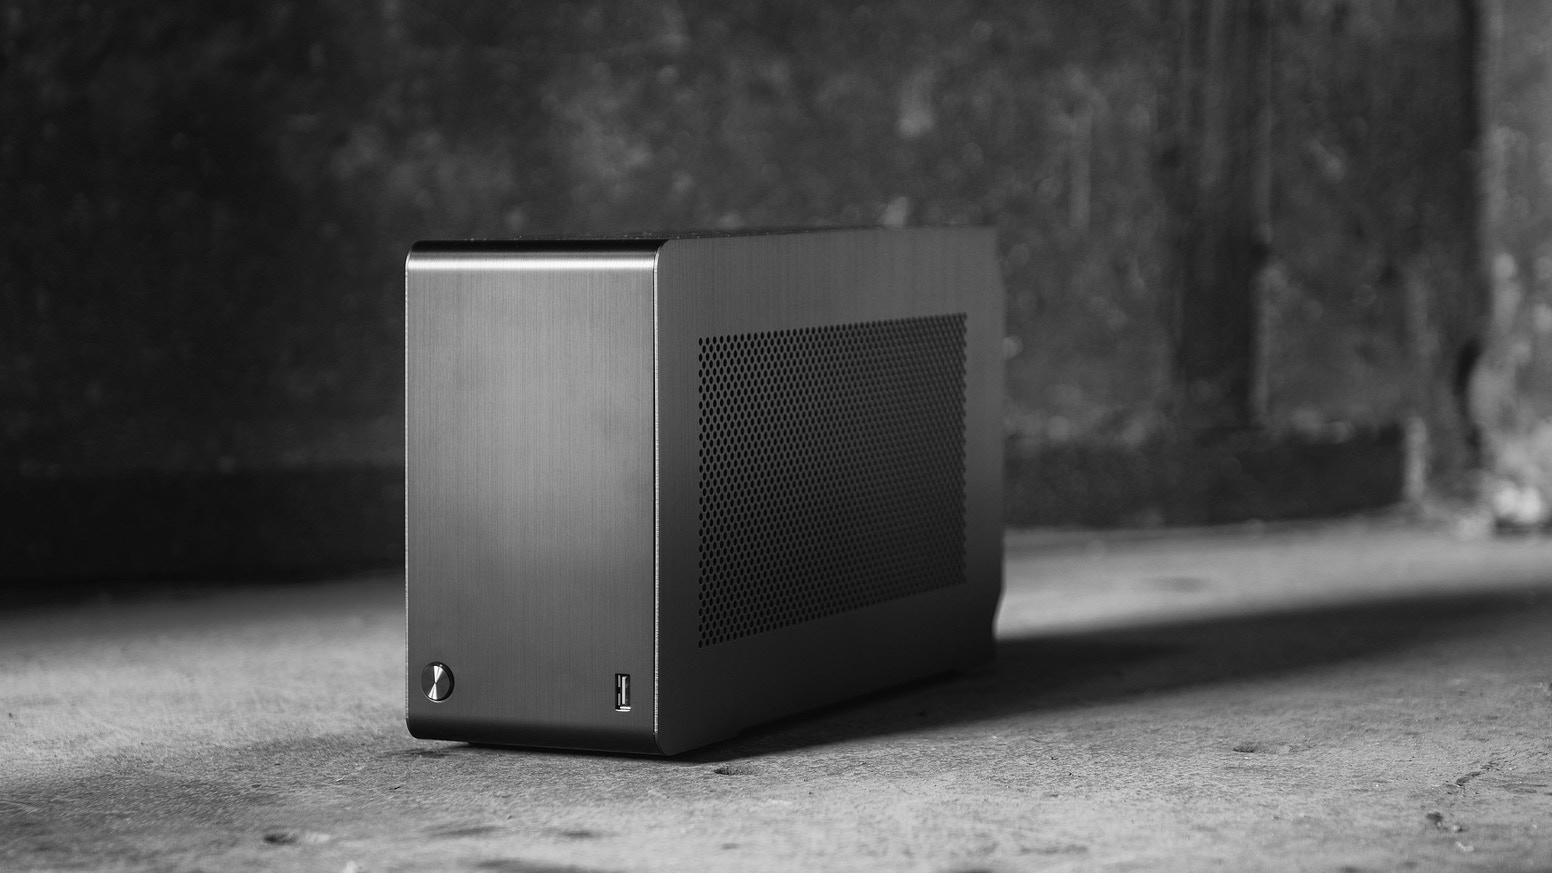 The A4-SFX is a project with the goal of creating the smallest case possible while still using high-end standardized components.